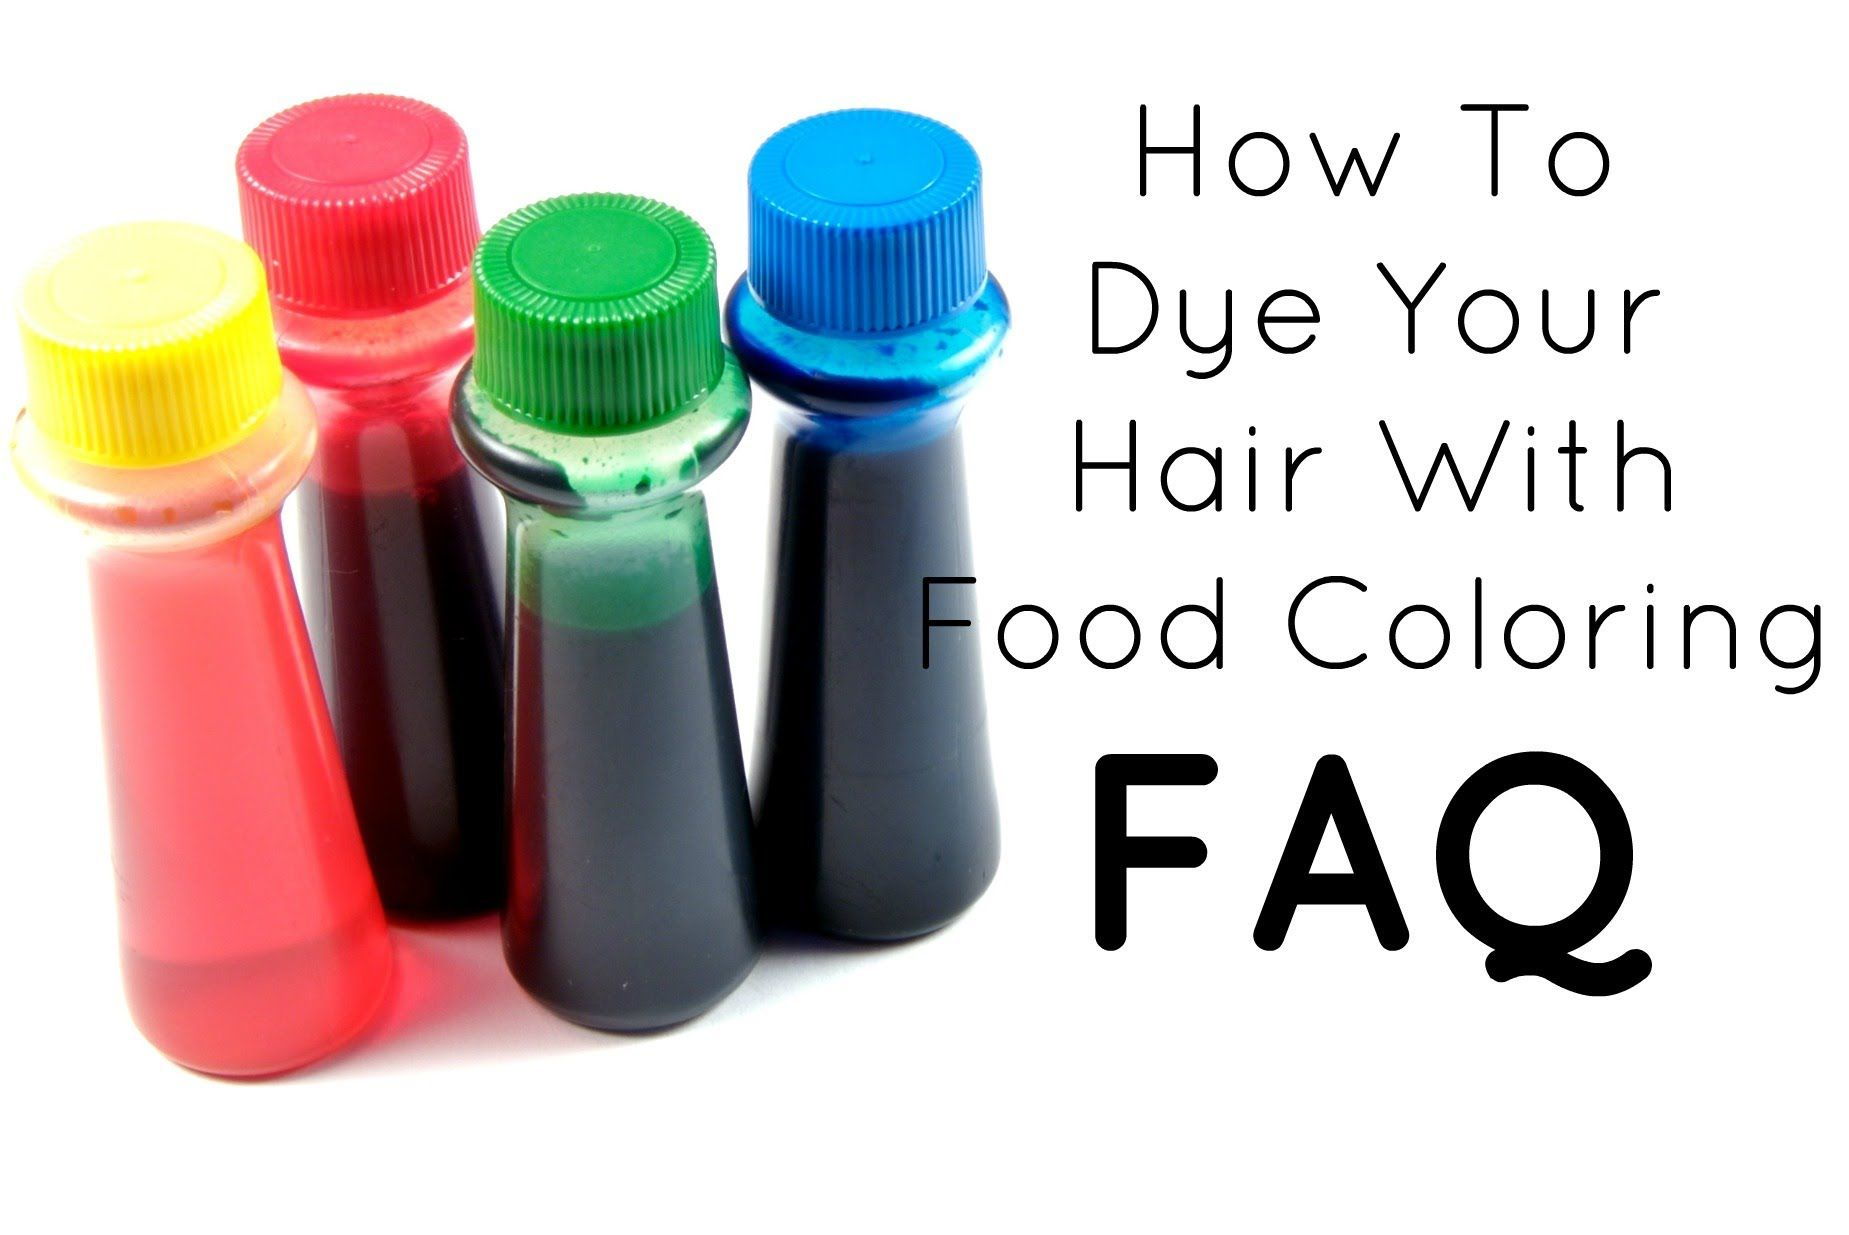 Faq How To Dye Your Hair With Food Coloring